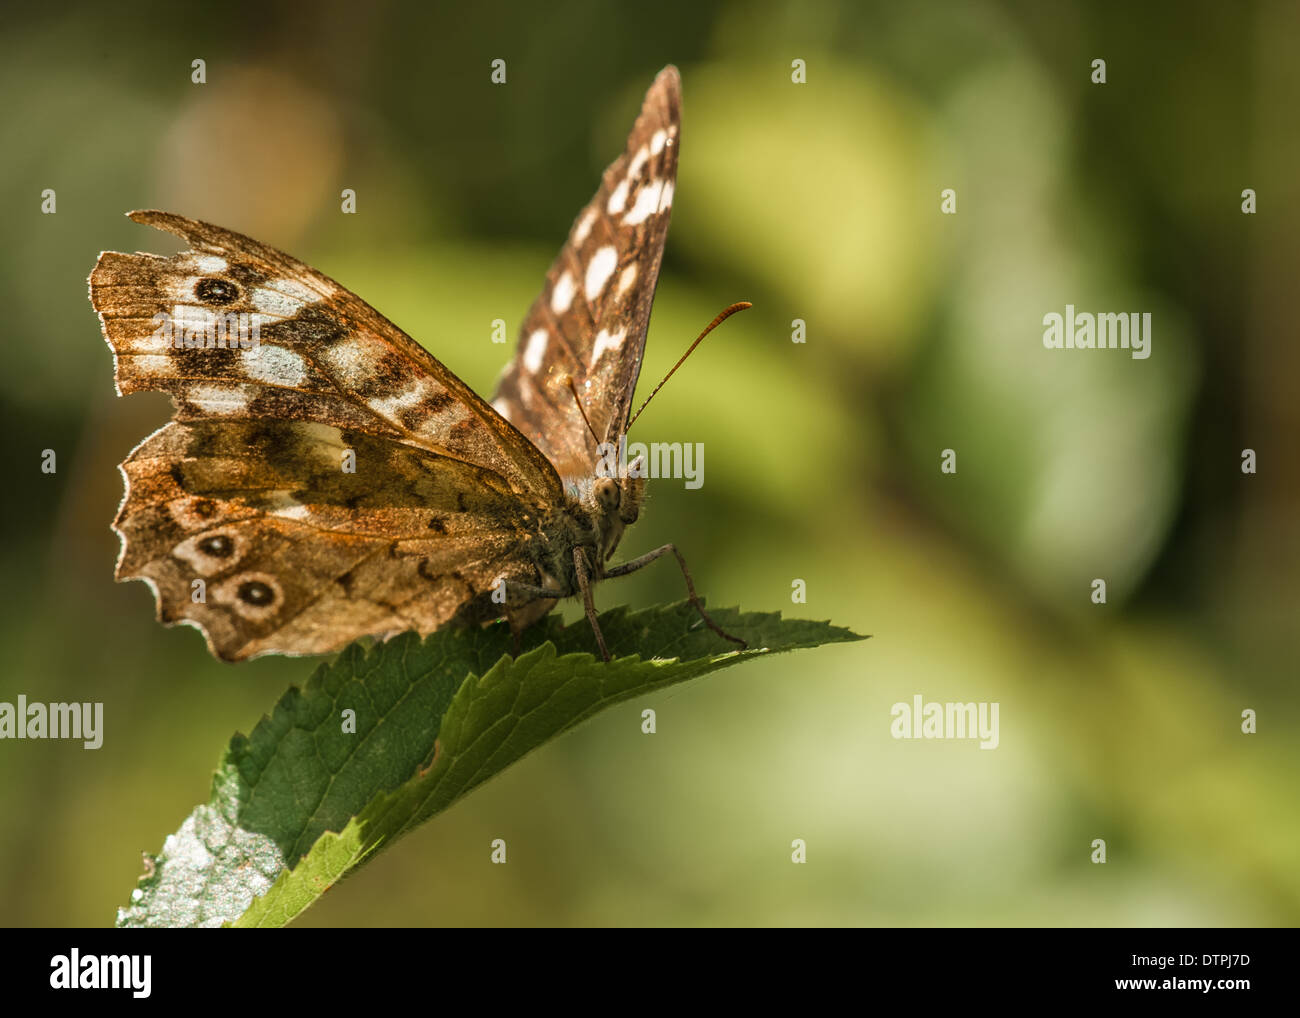 speckled wood butterfly / / pararge aegeria - Stock Image